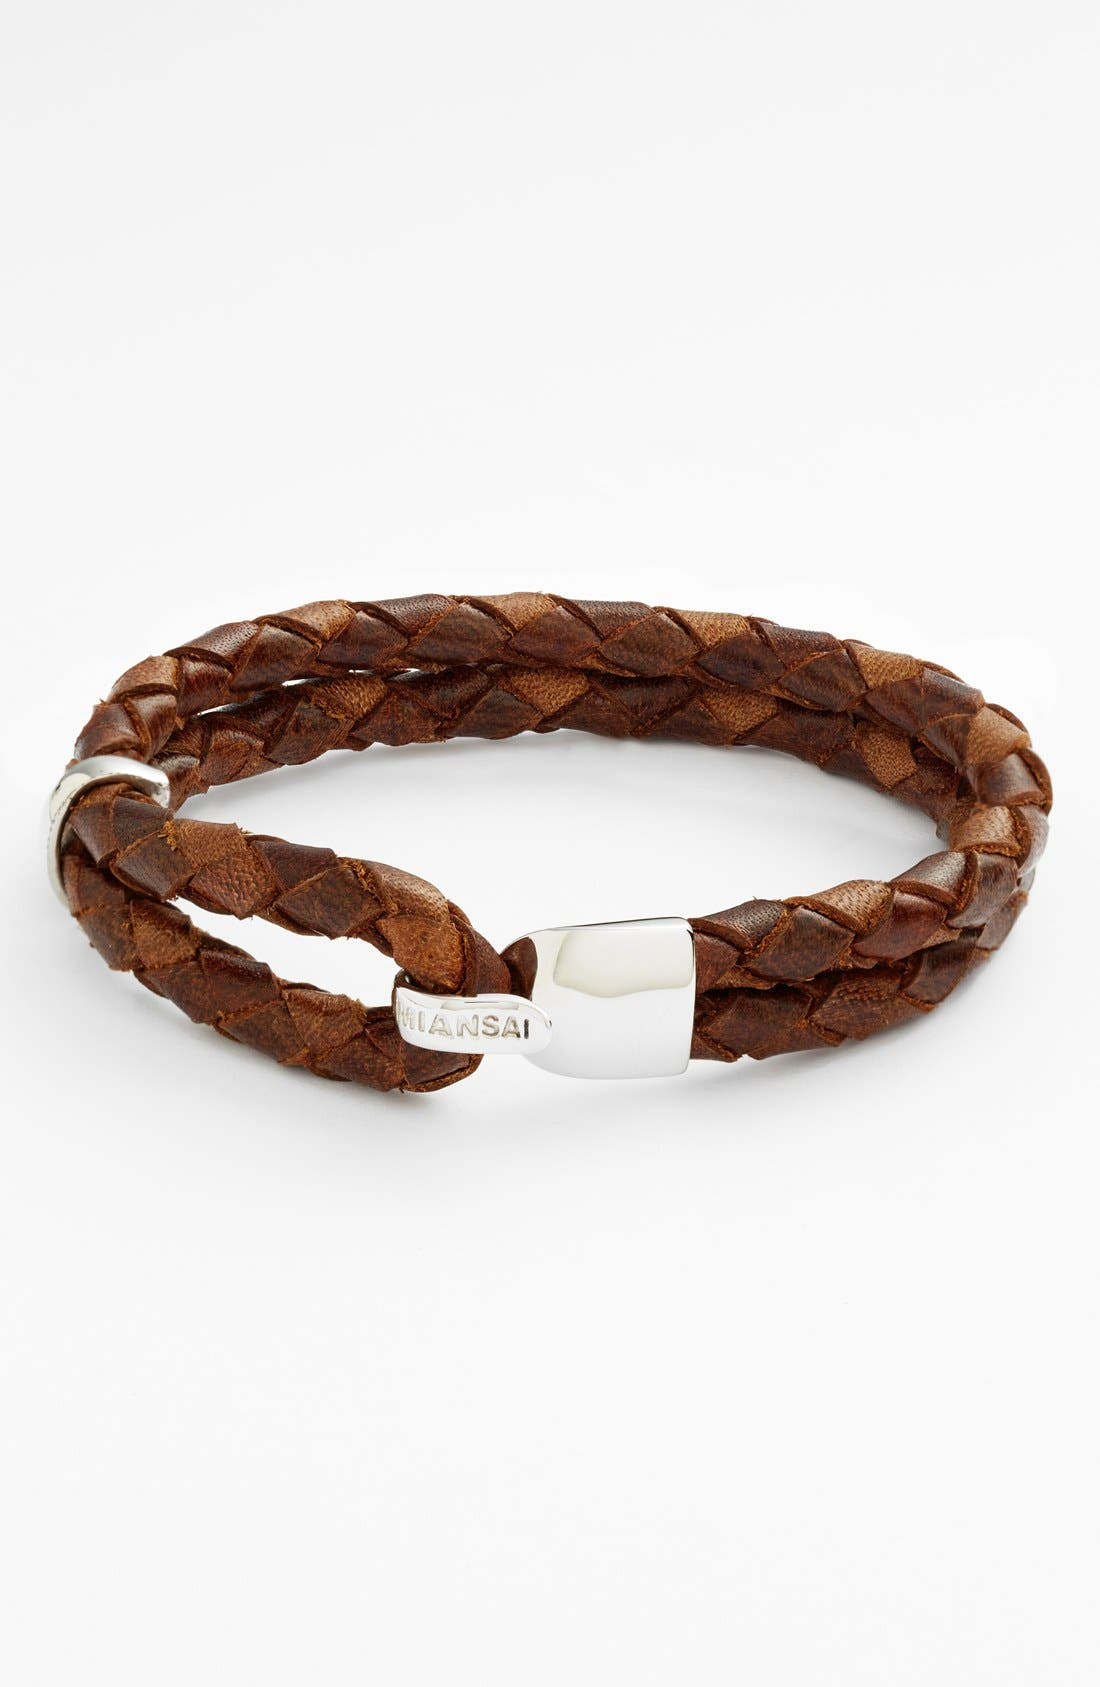 Miansai 'Beacon' Braided Leather Bracelet